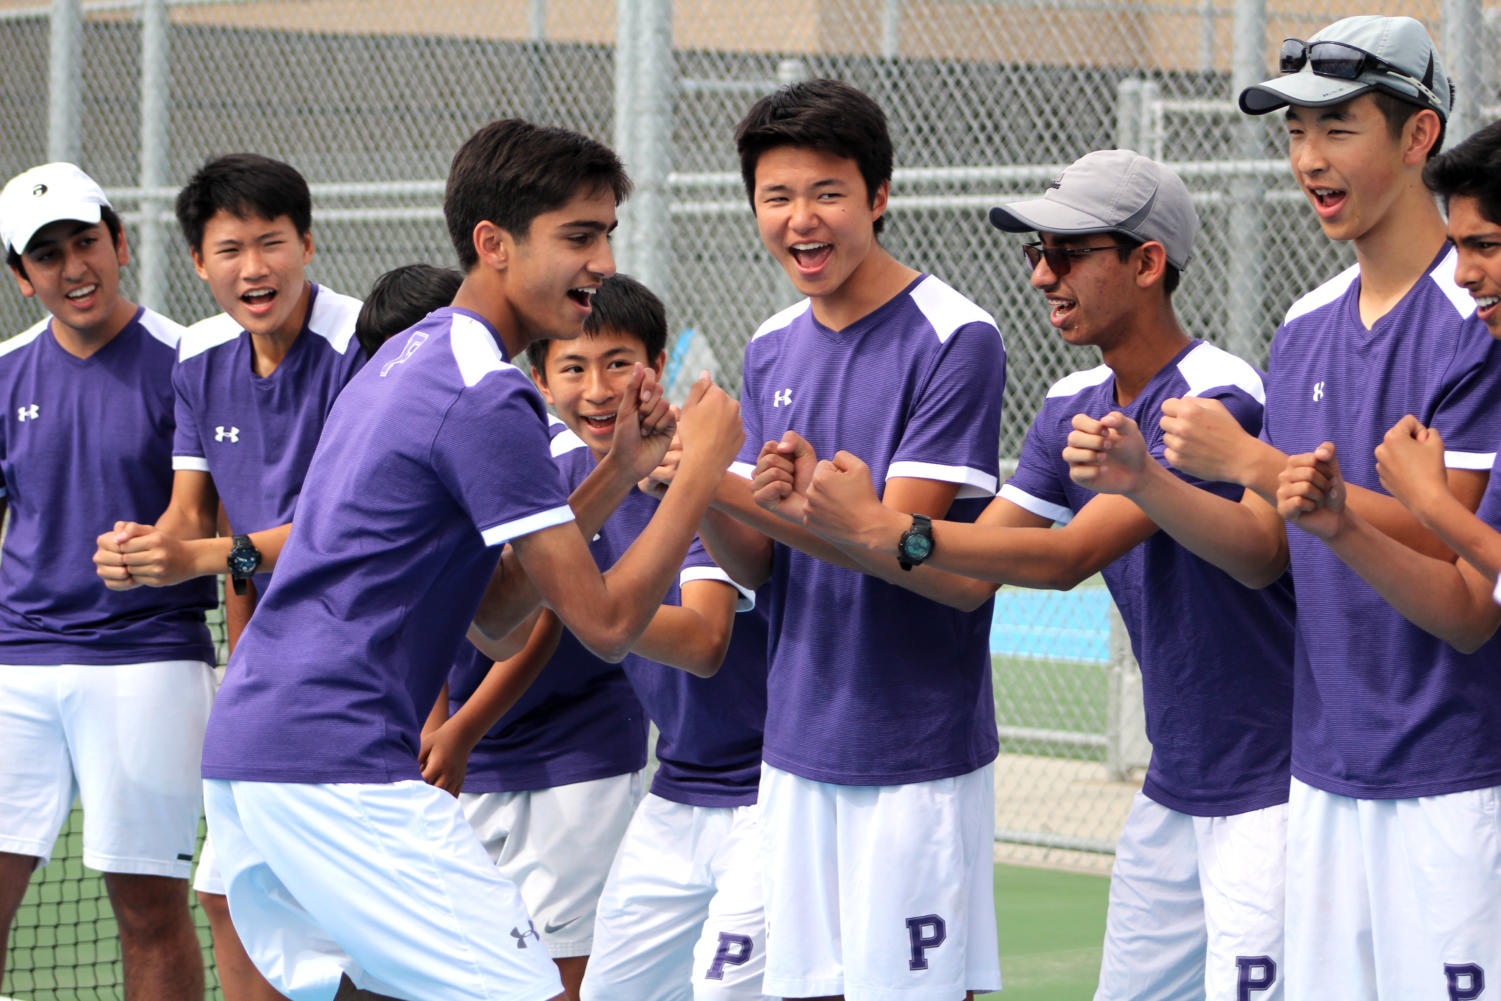 Sophomore Kameran Mody fist-bumps his team as he runs down the lineup at the start of the match in order to increase team spirit.